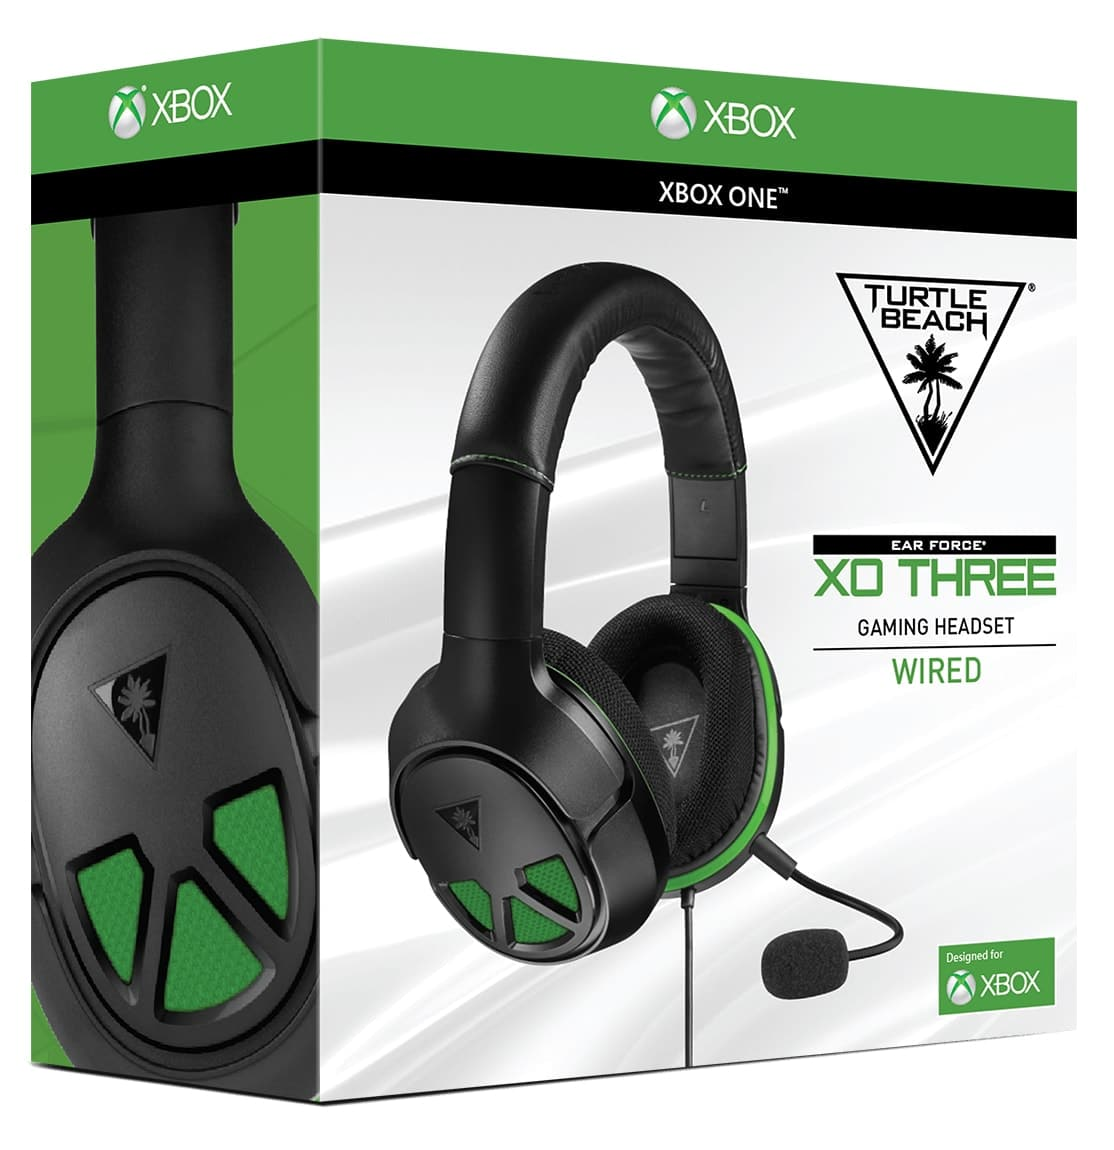 Turtle beach xbox one mic - Cheap last minute package holidays